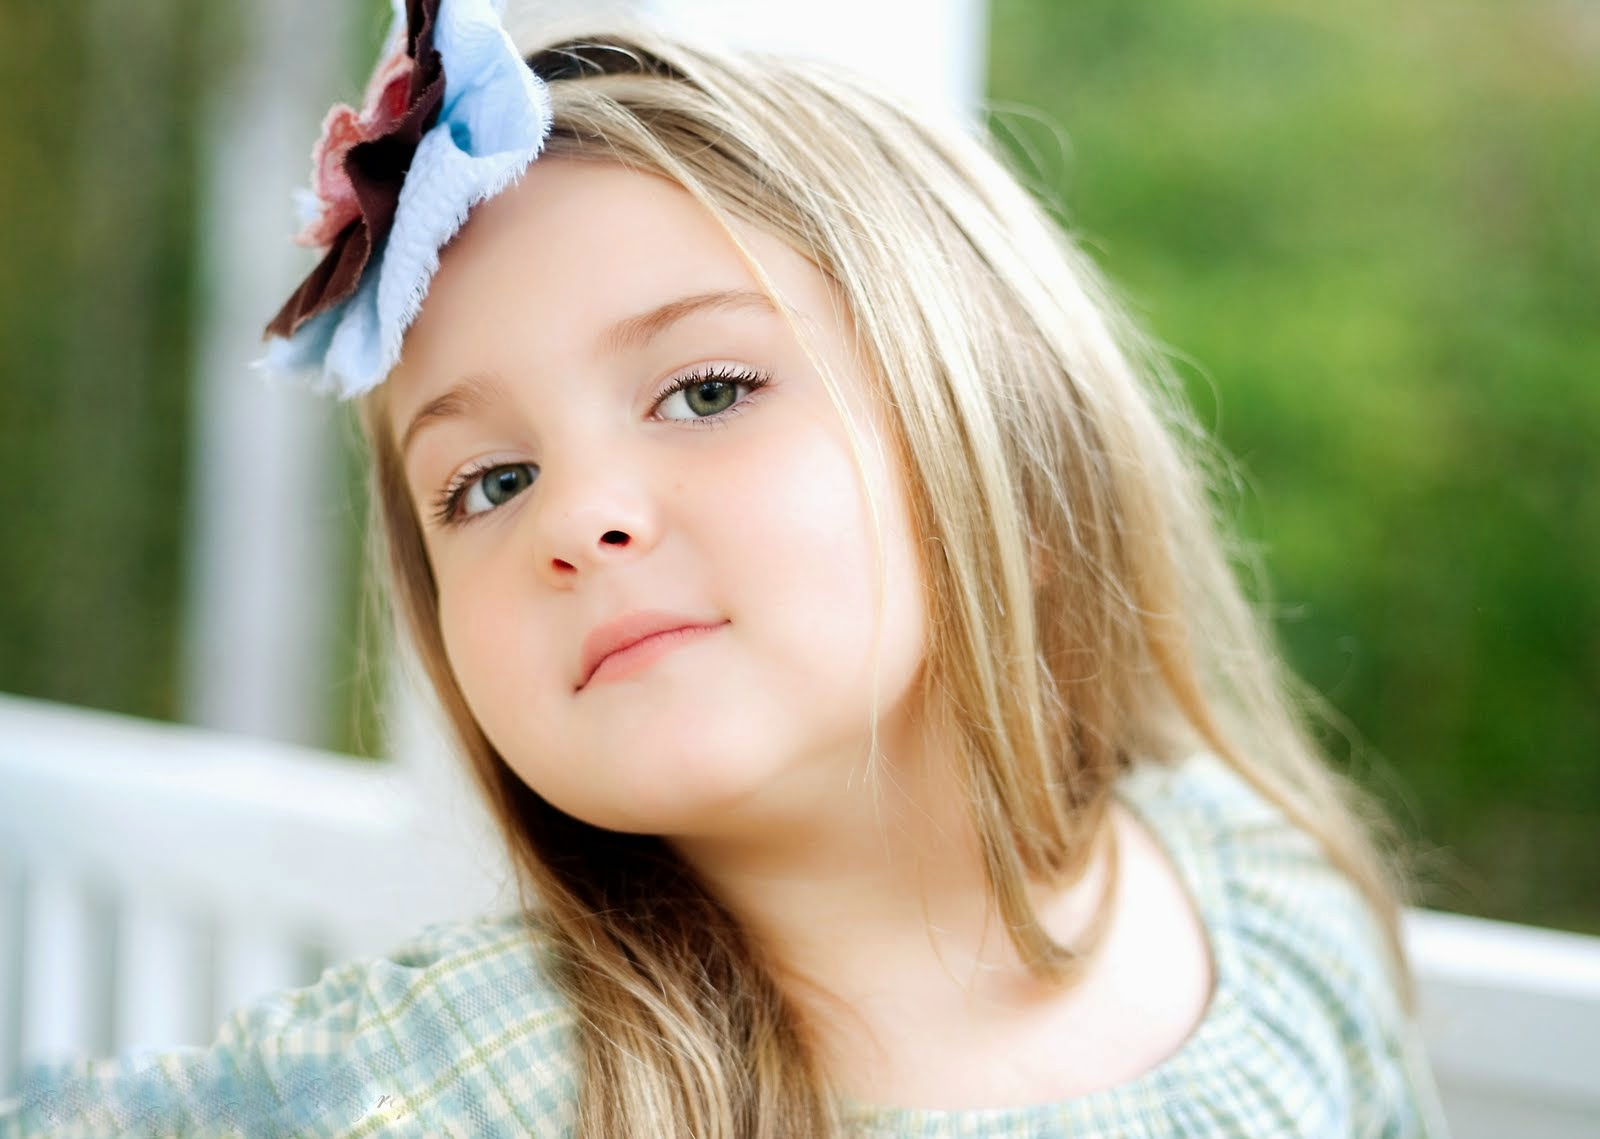 Cute Baby Girls Wallpapers HD Pictures One HD Wallpaper 1600x1139